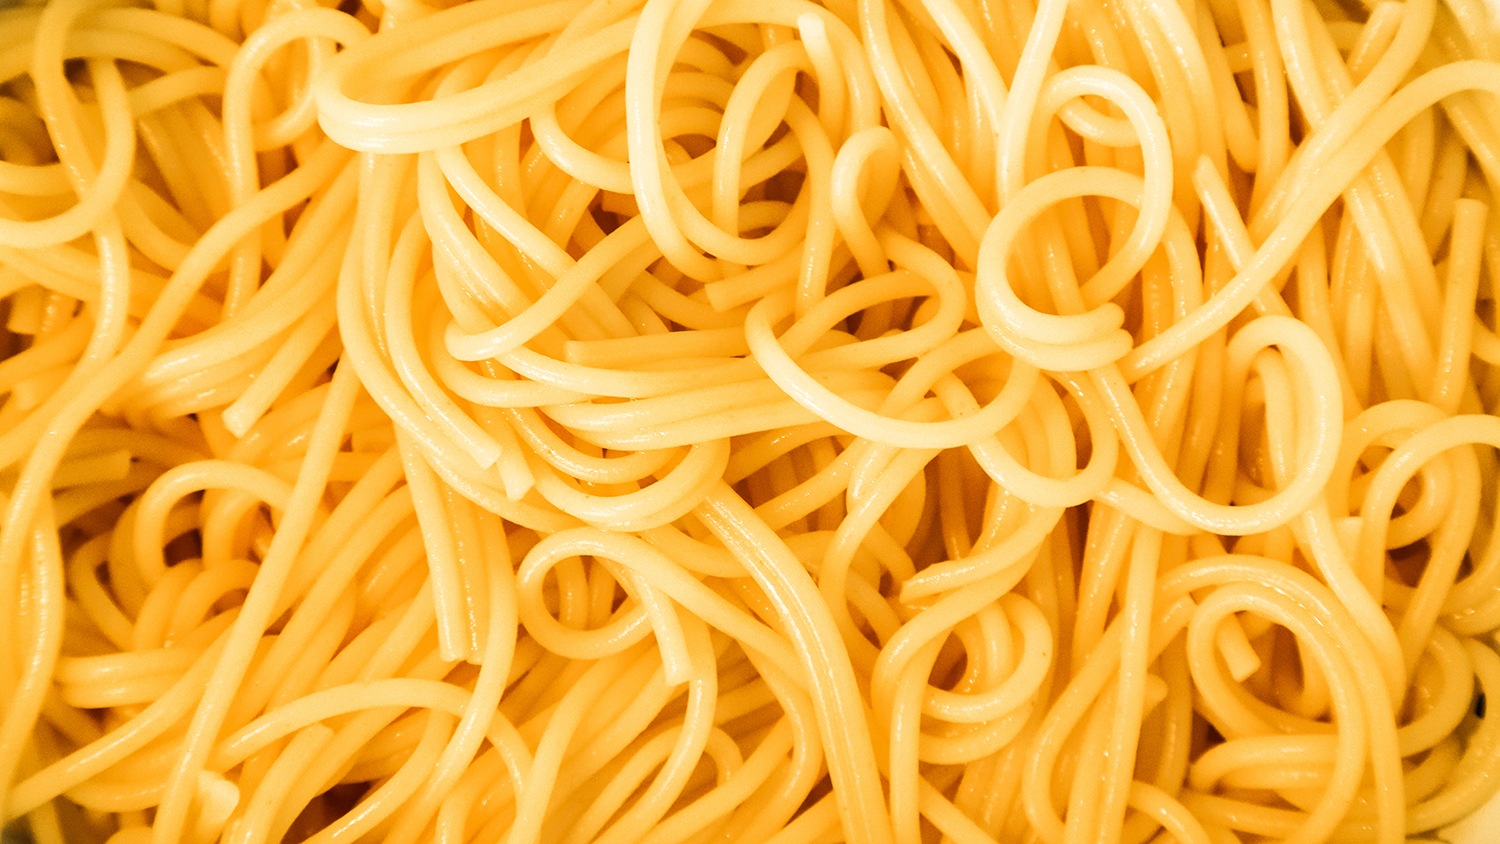 spaghetti singular form is spaghetto